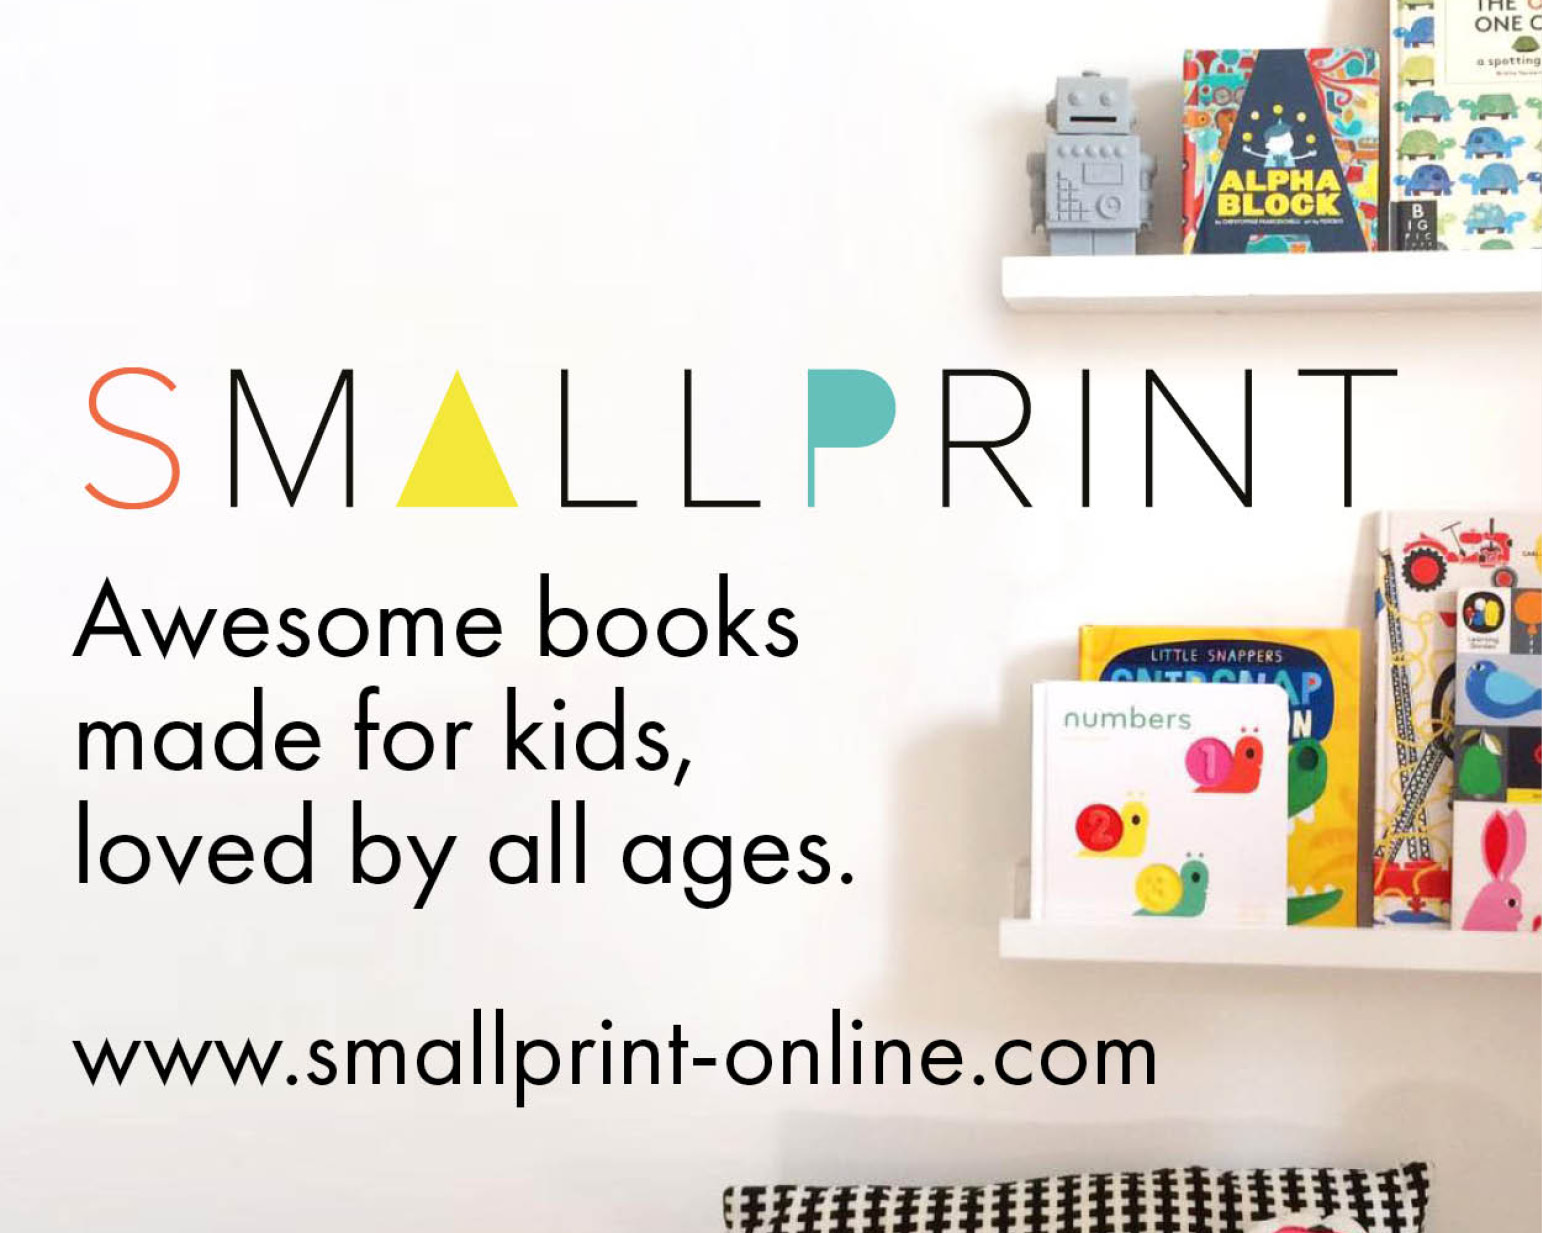 Small Print books - Captivating children's book shop, with hand picked titles and art chosen to make brilliant kids gifts adults will want for themselves.